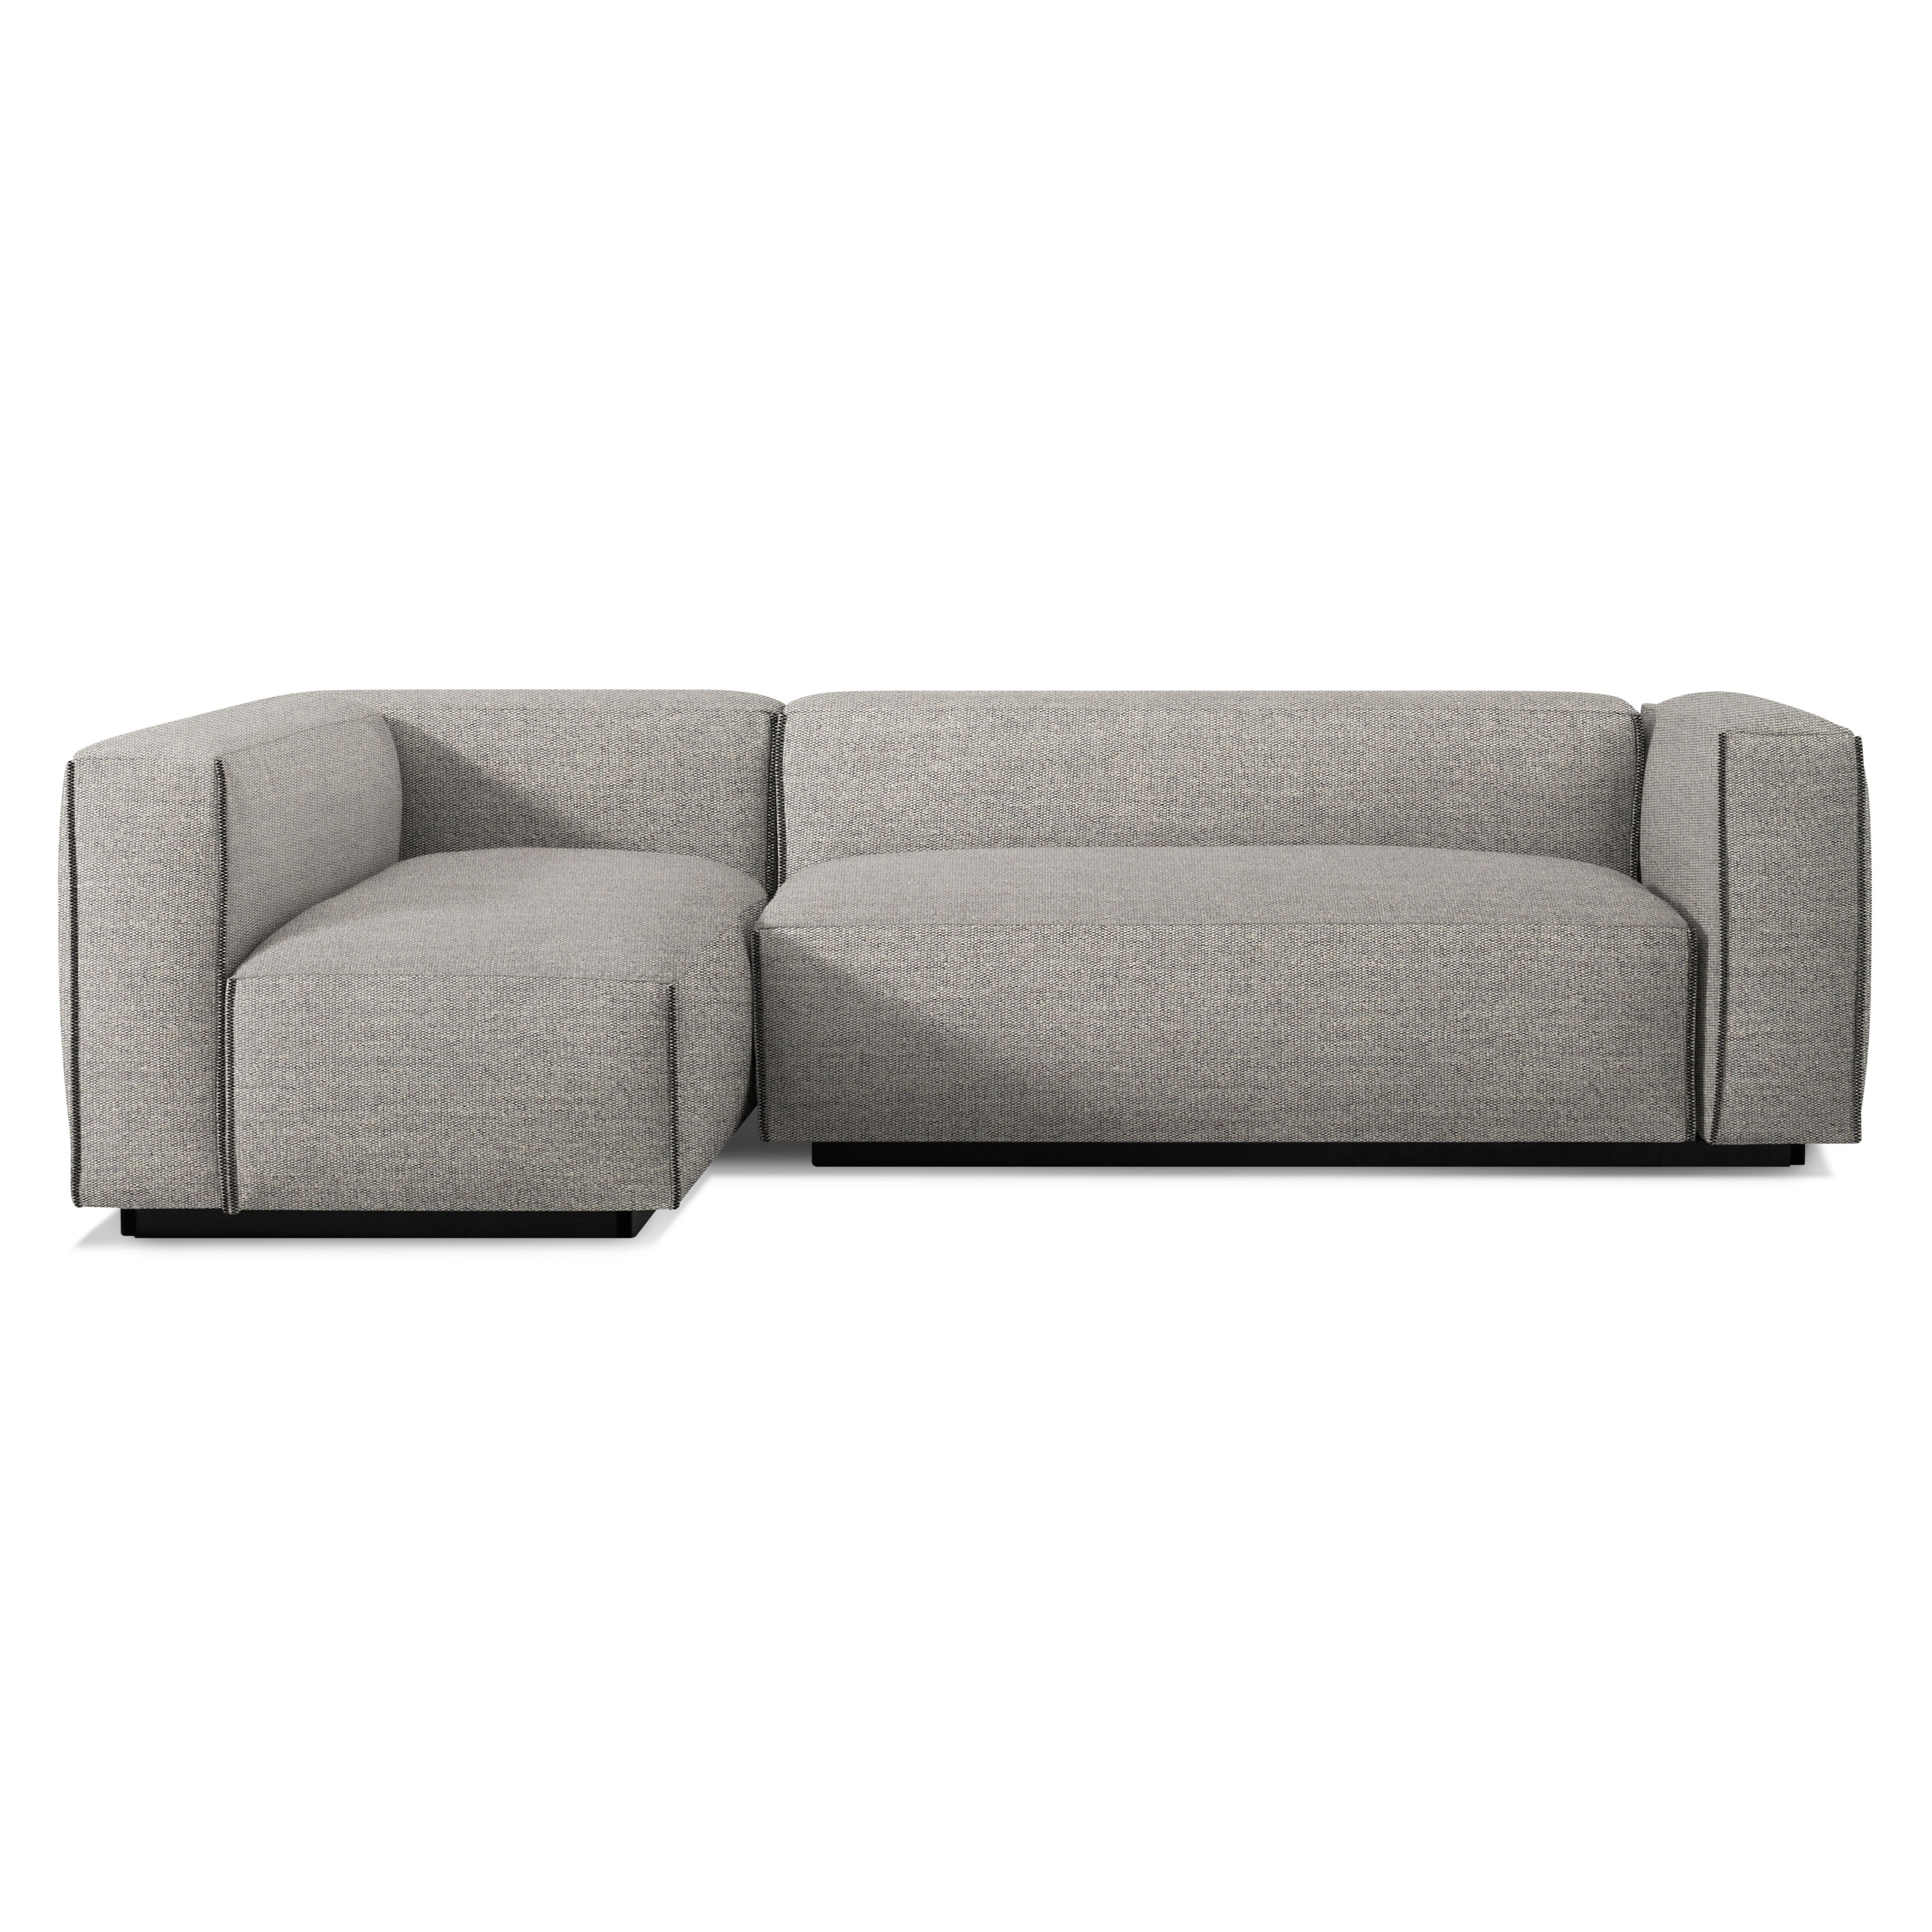 Latest Newmarket Ontario Sectional Sofas Throughout Cleon Small Modern Sectional Sofa (View 4 of 20)